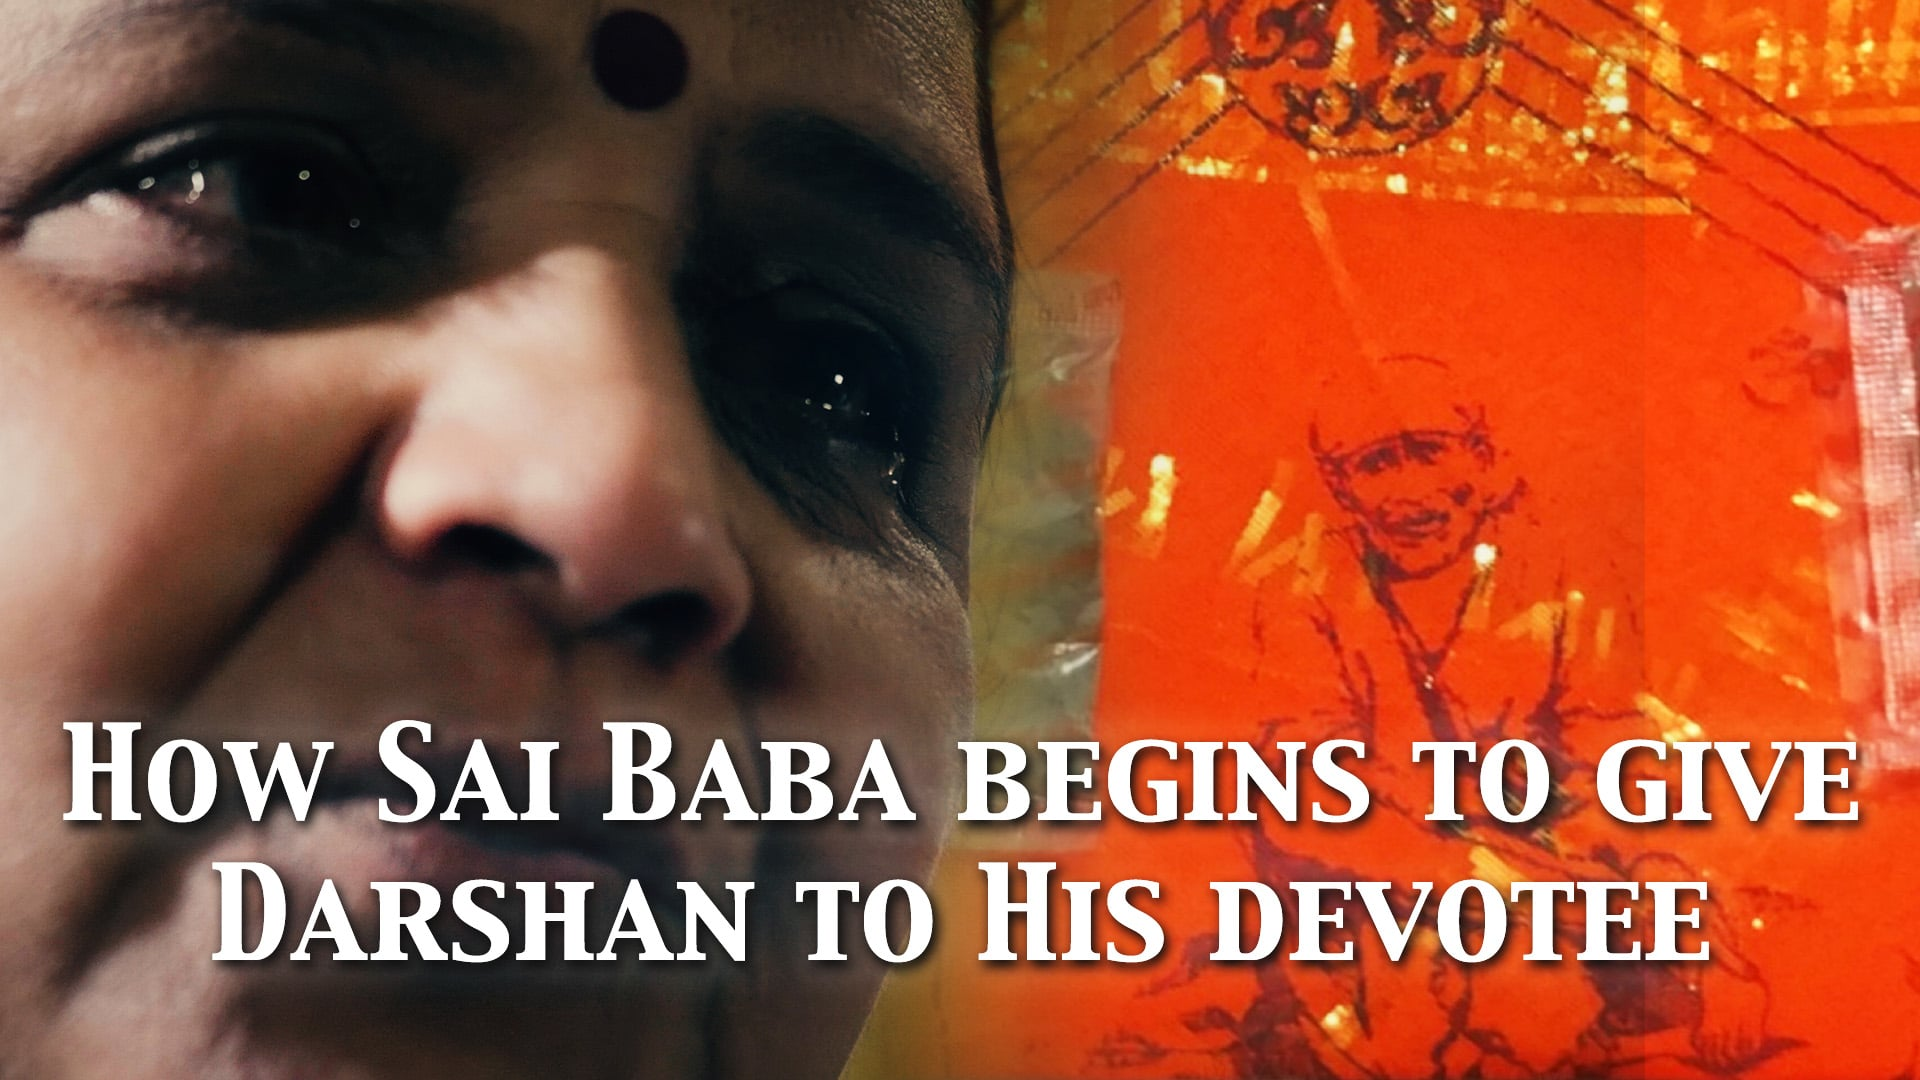 How Sai Baba begins to give Darshan to His devotee